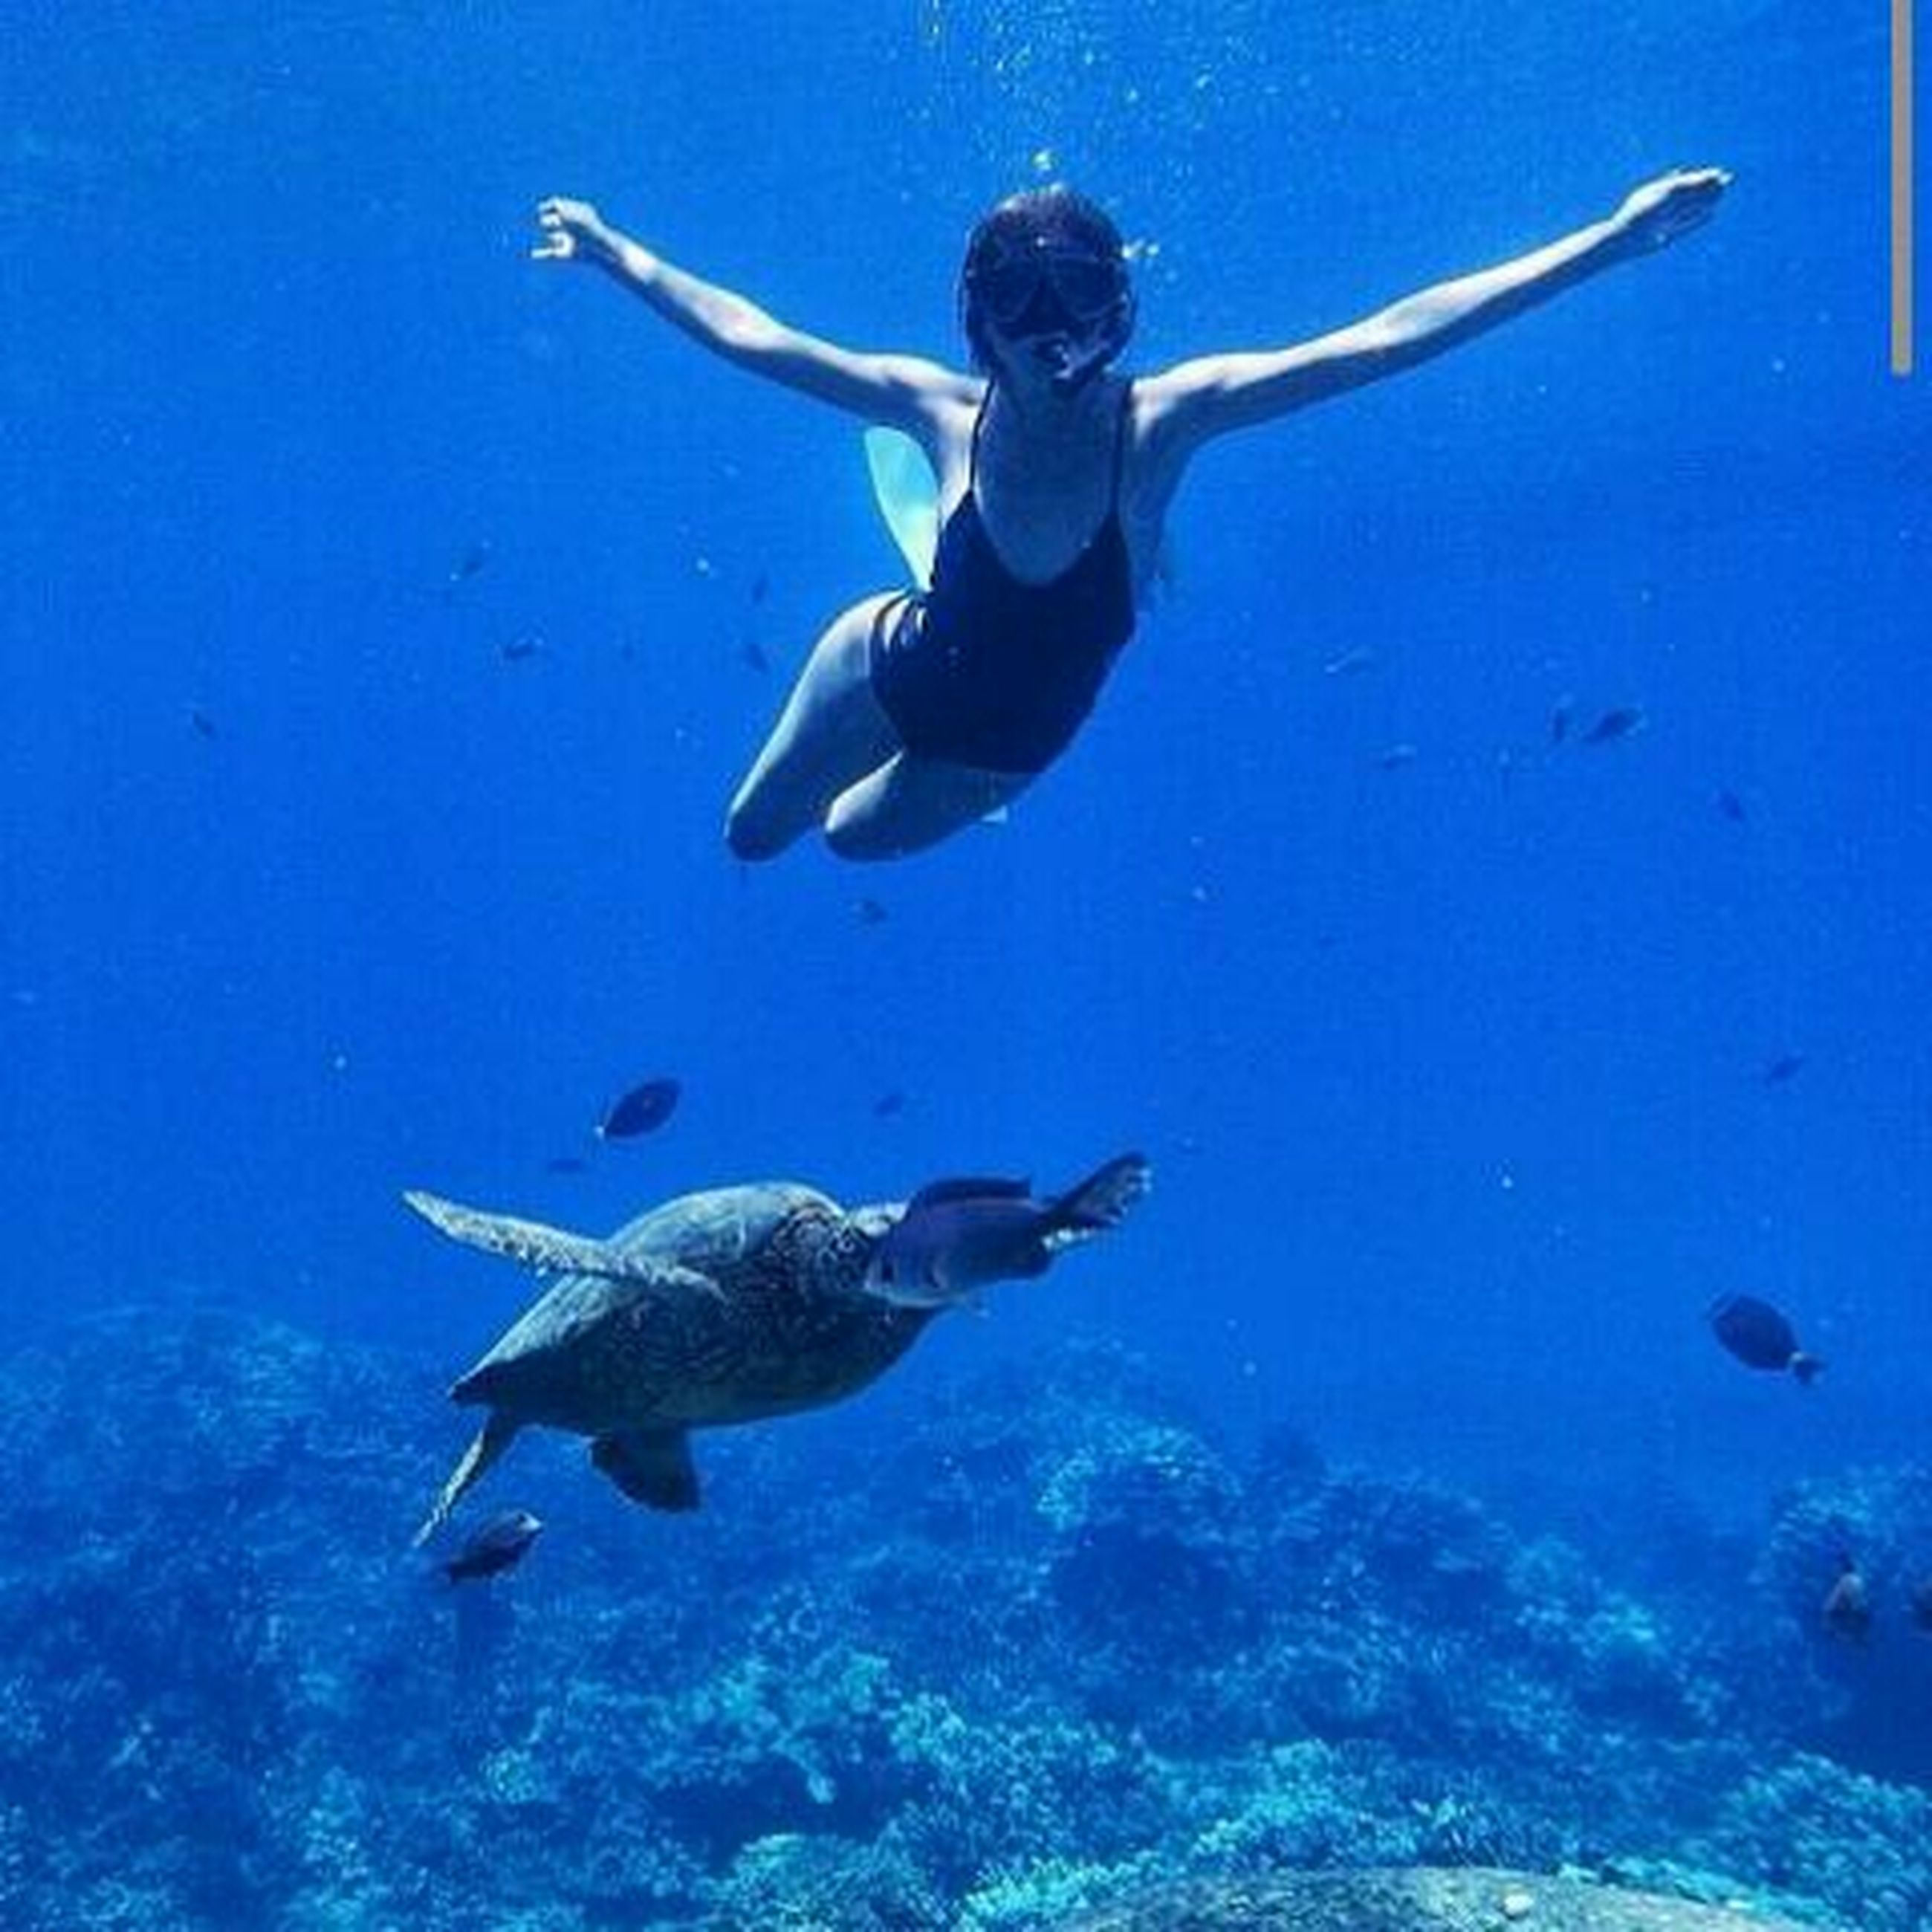 blue, animal themes, mid-air, full length, water, sea, swimming, animals in the wild, low angle view, wildlife, leisure activity, underwater, flying, jumping, fish, motion, sea life, vacations